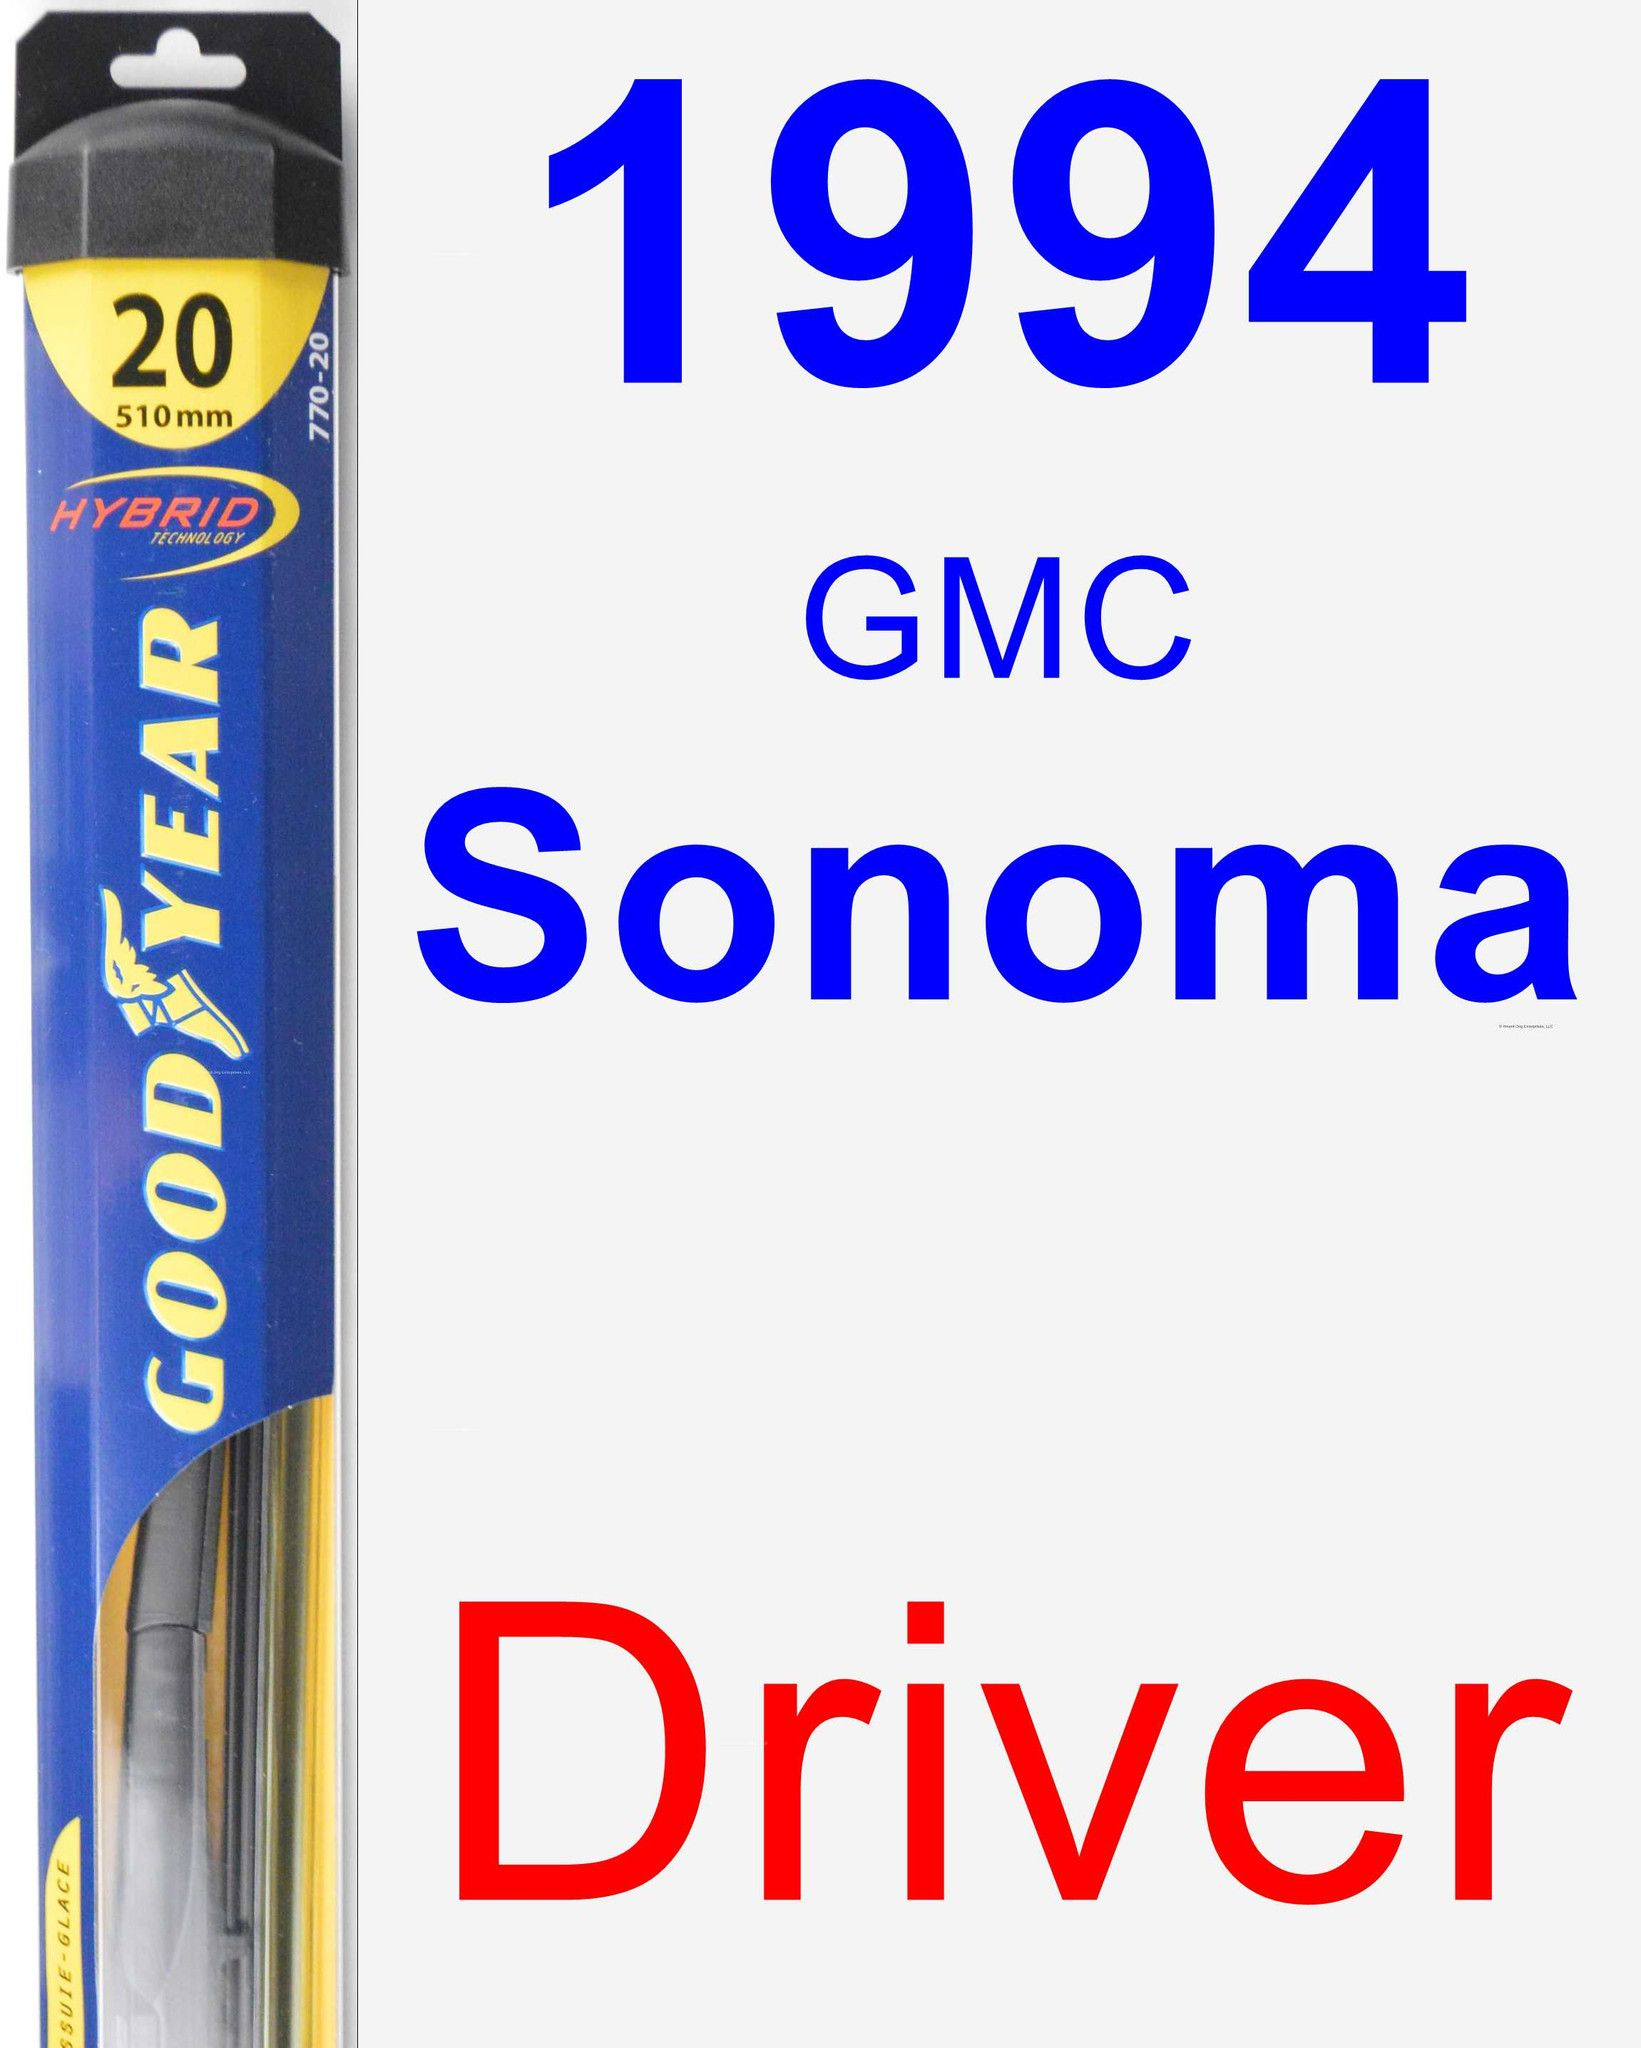 Driver Wiper Blade for 1994 GMC Sonoma - Hybrid